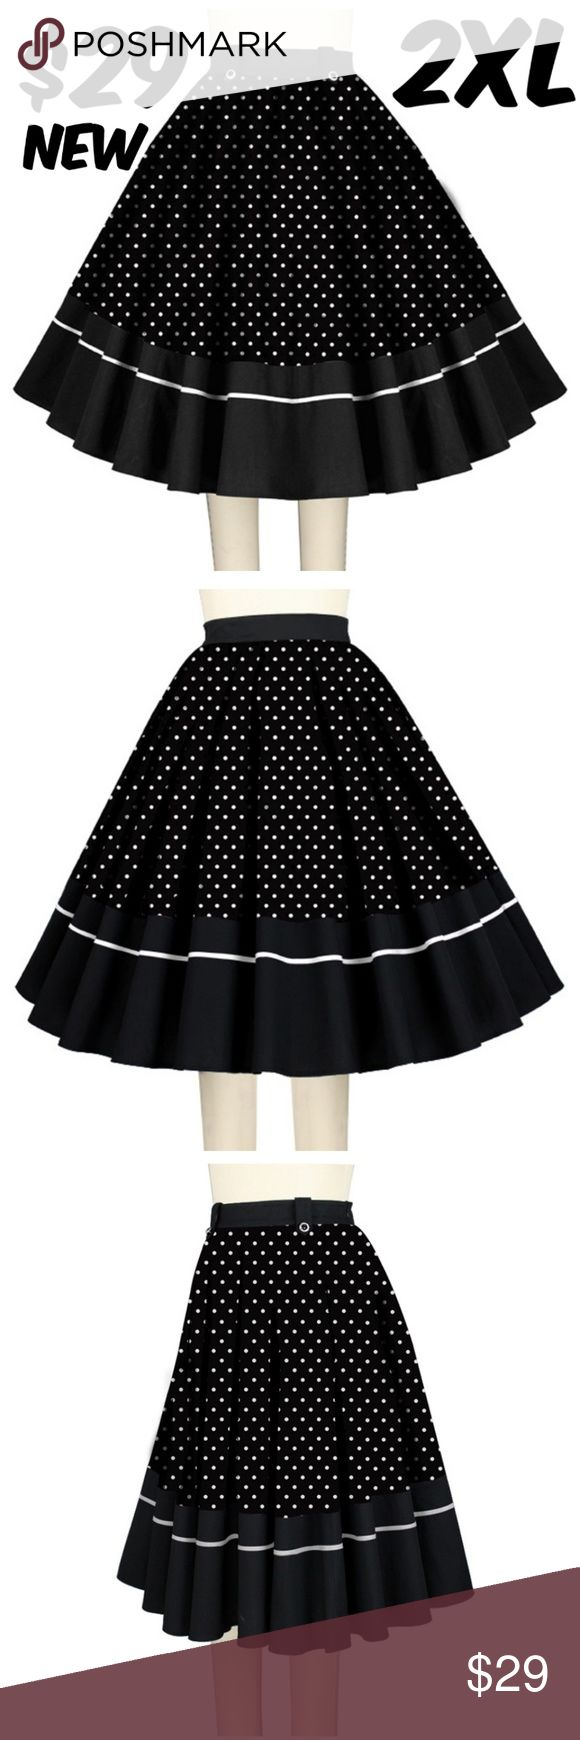 """Polka Dot Plus Size Pin Up Full Circle Skirt 1950s Polka Dot Plus Size Pin Up Full Circle Skirt 1950s WAIST: 34"""" LENGTH: 27"""" CONDITION: NEW TAG SIZE IS 44 EUROPEAN WHICH IS A US 2XL #CS Skirts A-Line or Full"""